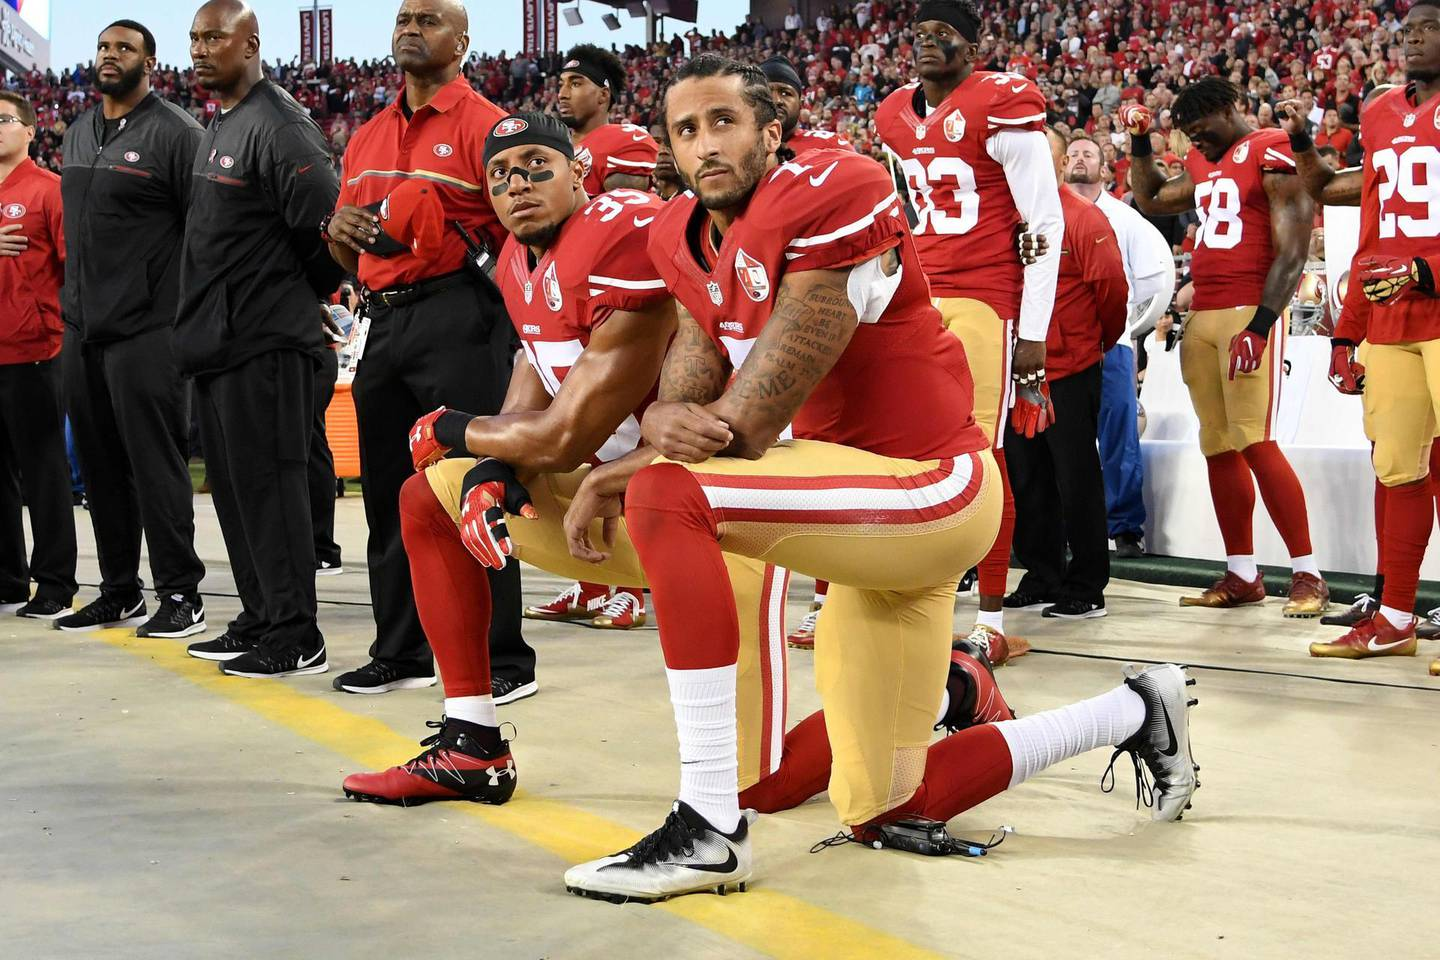 (FILES) In this file photo taken on September 11, 2016  Colin Kaepernick #7 and Eric Reid #35 of the San Francisco 49ers kneel in protest during the national anthem prior to playing the Los Angeles Rams in their NFL game at Levi's Stadium in Santa Clara, California. Former NFL star Colin Kaepernick, who launched kneeling protests during US national anthems to protest police brutality and racial injustice, will be the subject of a six-part series, Netflix announced June 29, 2020. -   / AFP / GETTY IMAGES NORTH AMERICA / Thearon W. Henderson